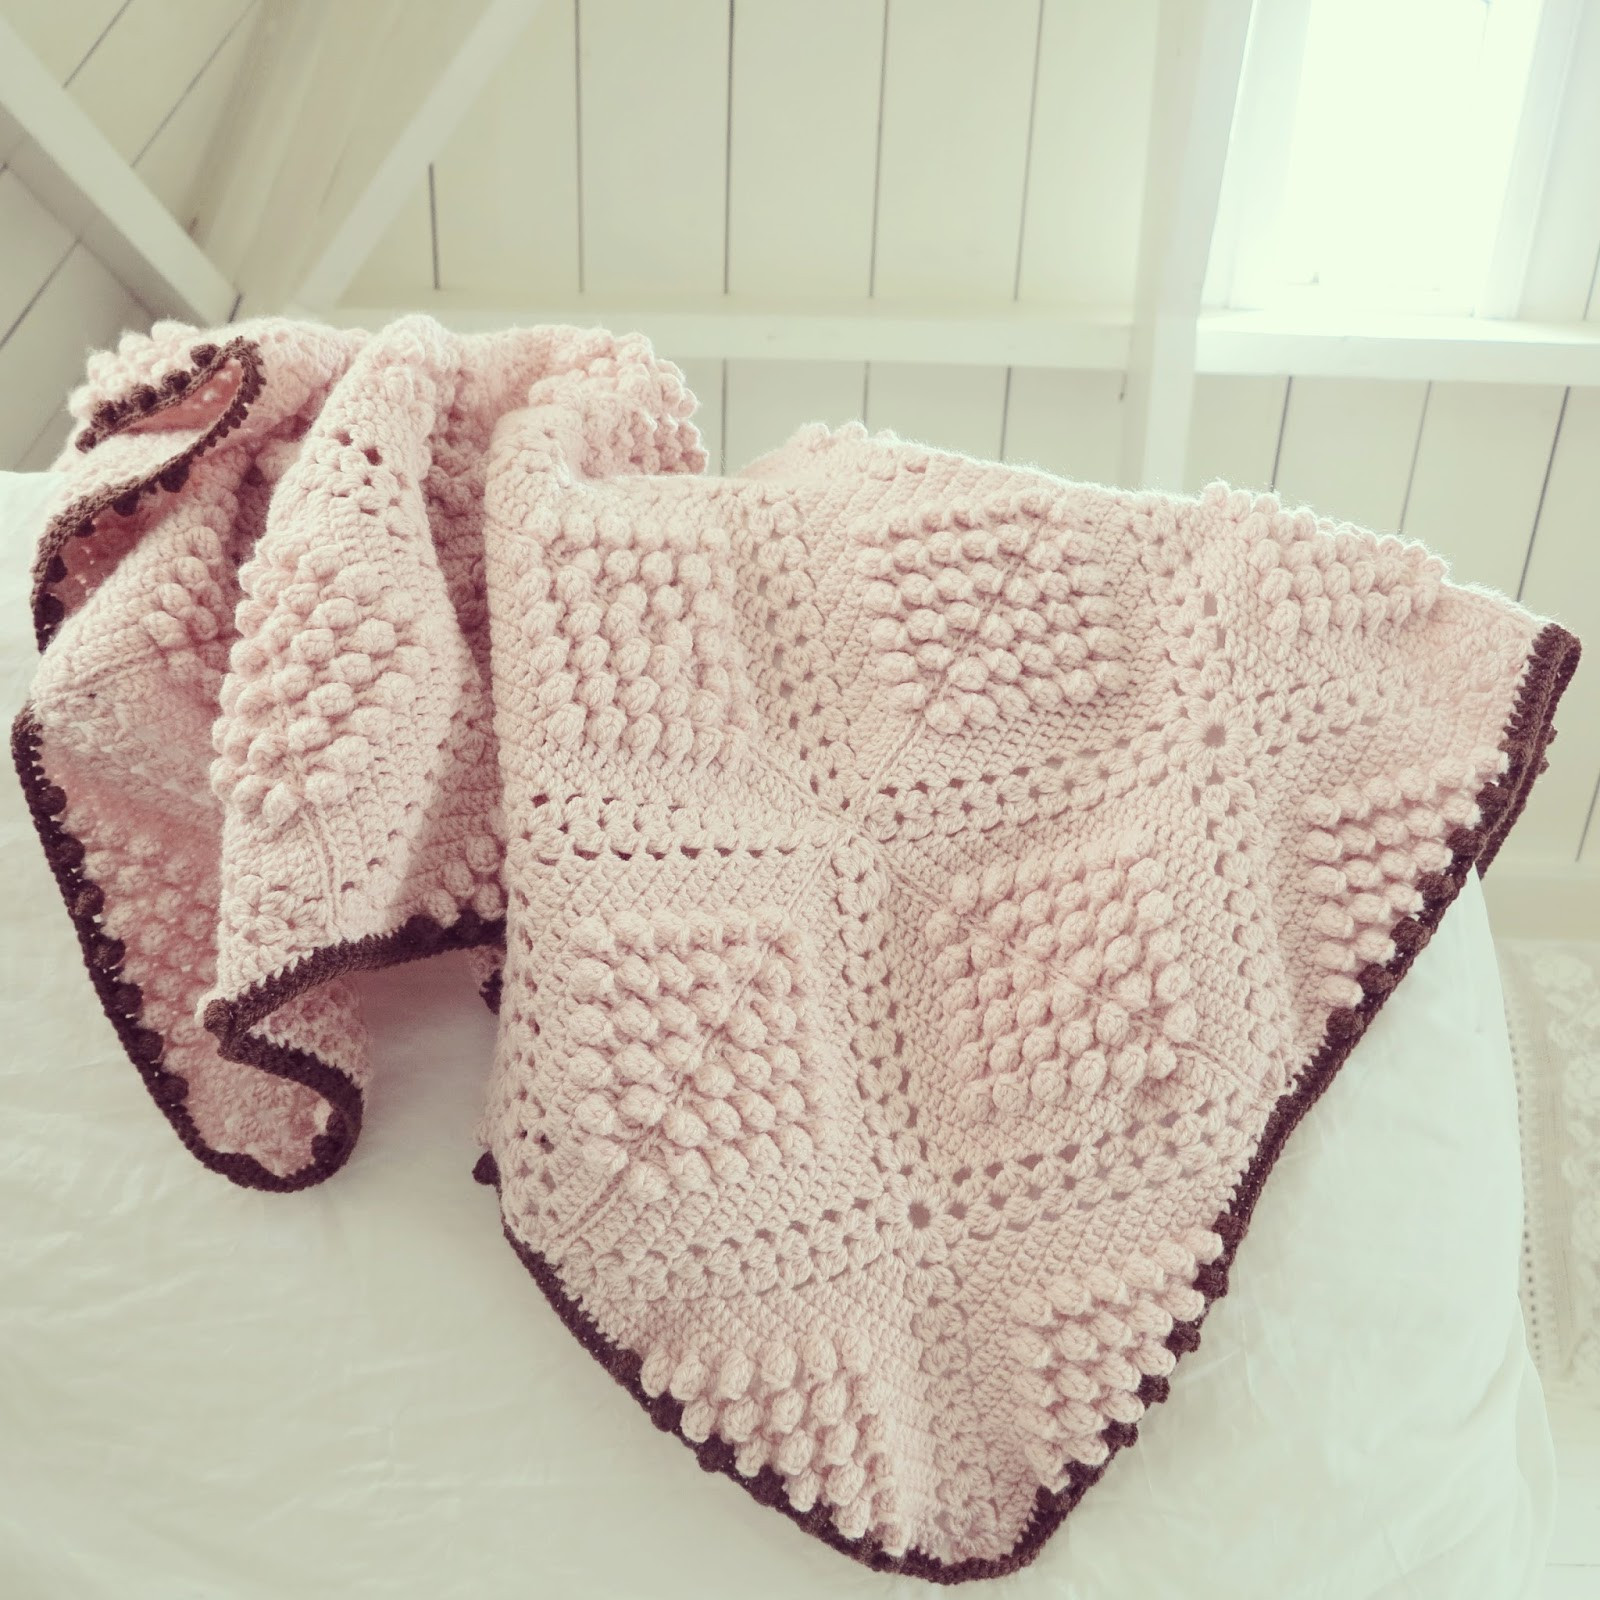 Crochet Baby Blanket Patterns Awesome 10 Free Crochet Patterns & Tutorials for Baby Blankets Of Fresh 44 Models Crochet Baby Blanket Patterns